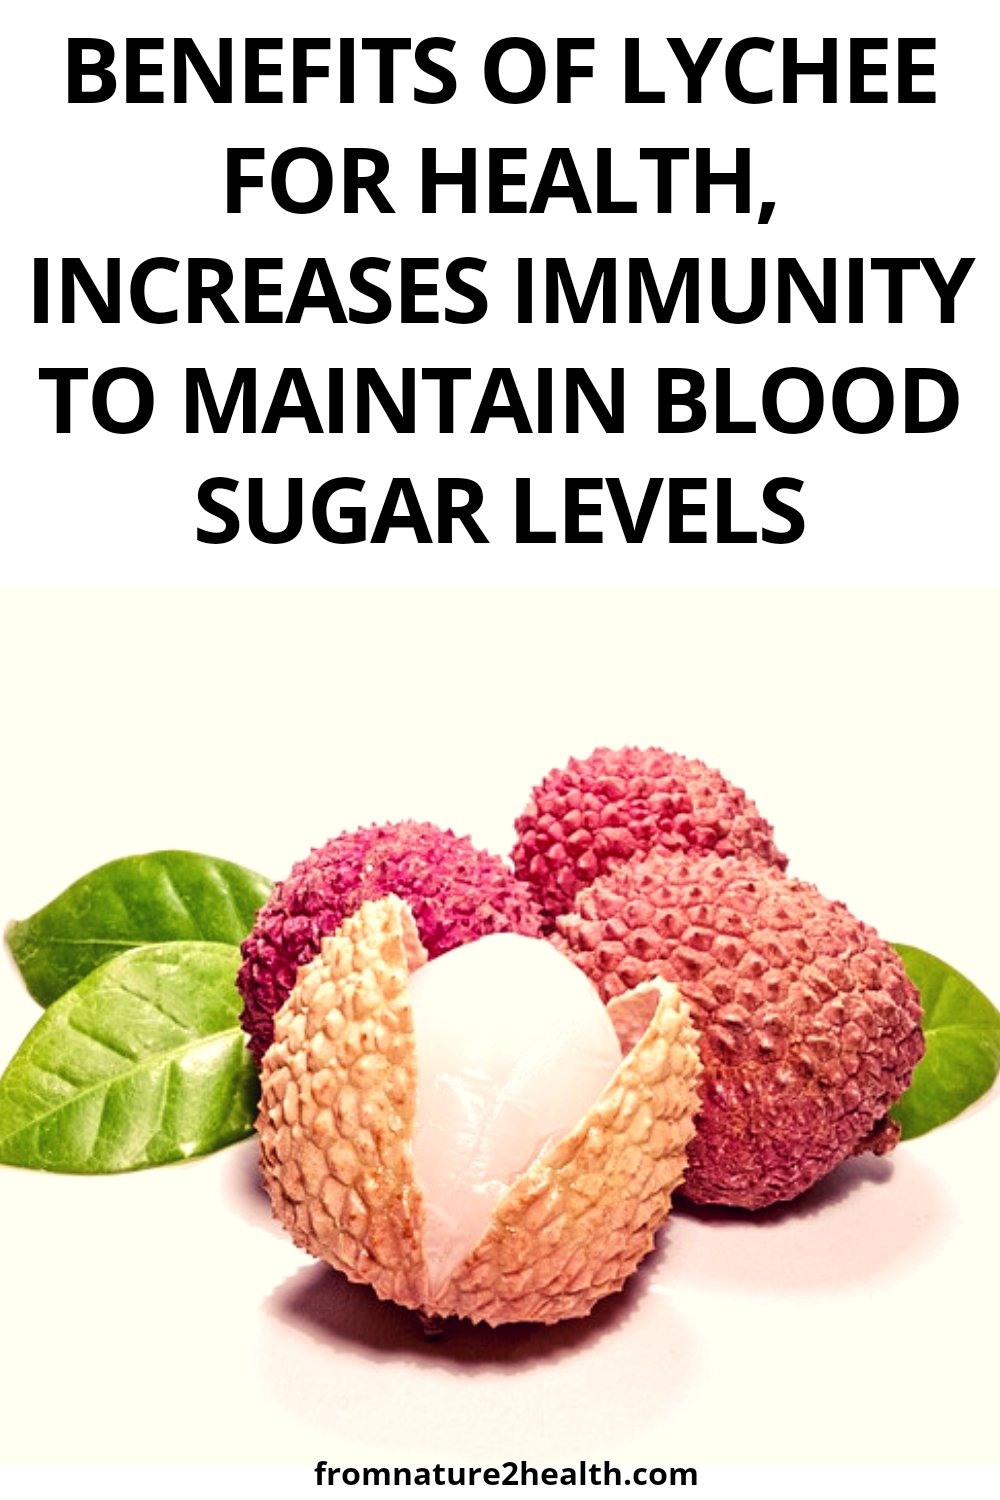 Benefits of Lychee for Health, Increases Immunity to Maintain Blood Sugar Levels